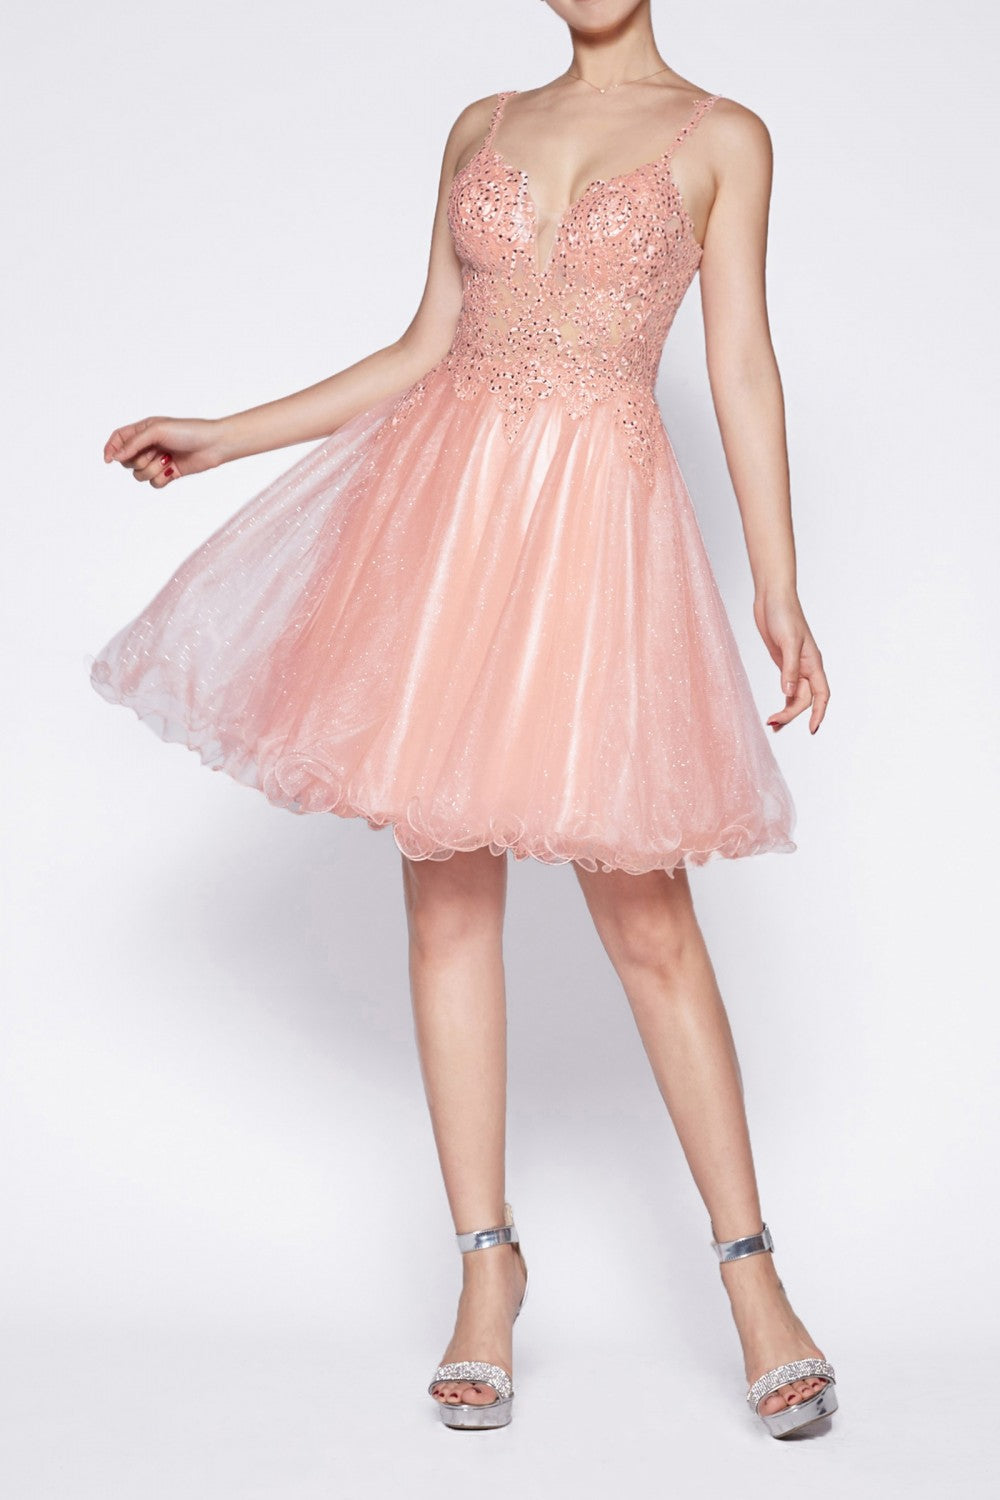 Cinderella Divine Chart I CD CD0137 - A-line Short Homecoming Dress with Glitter Tulle and Jewled Lace Bodice - Diggz Prom